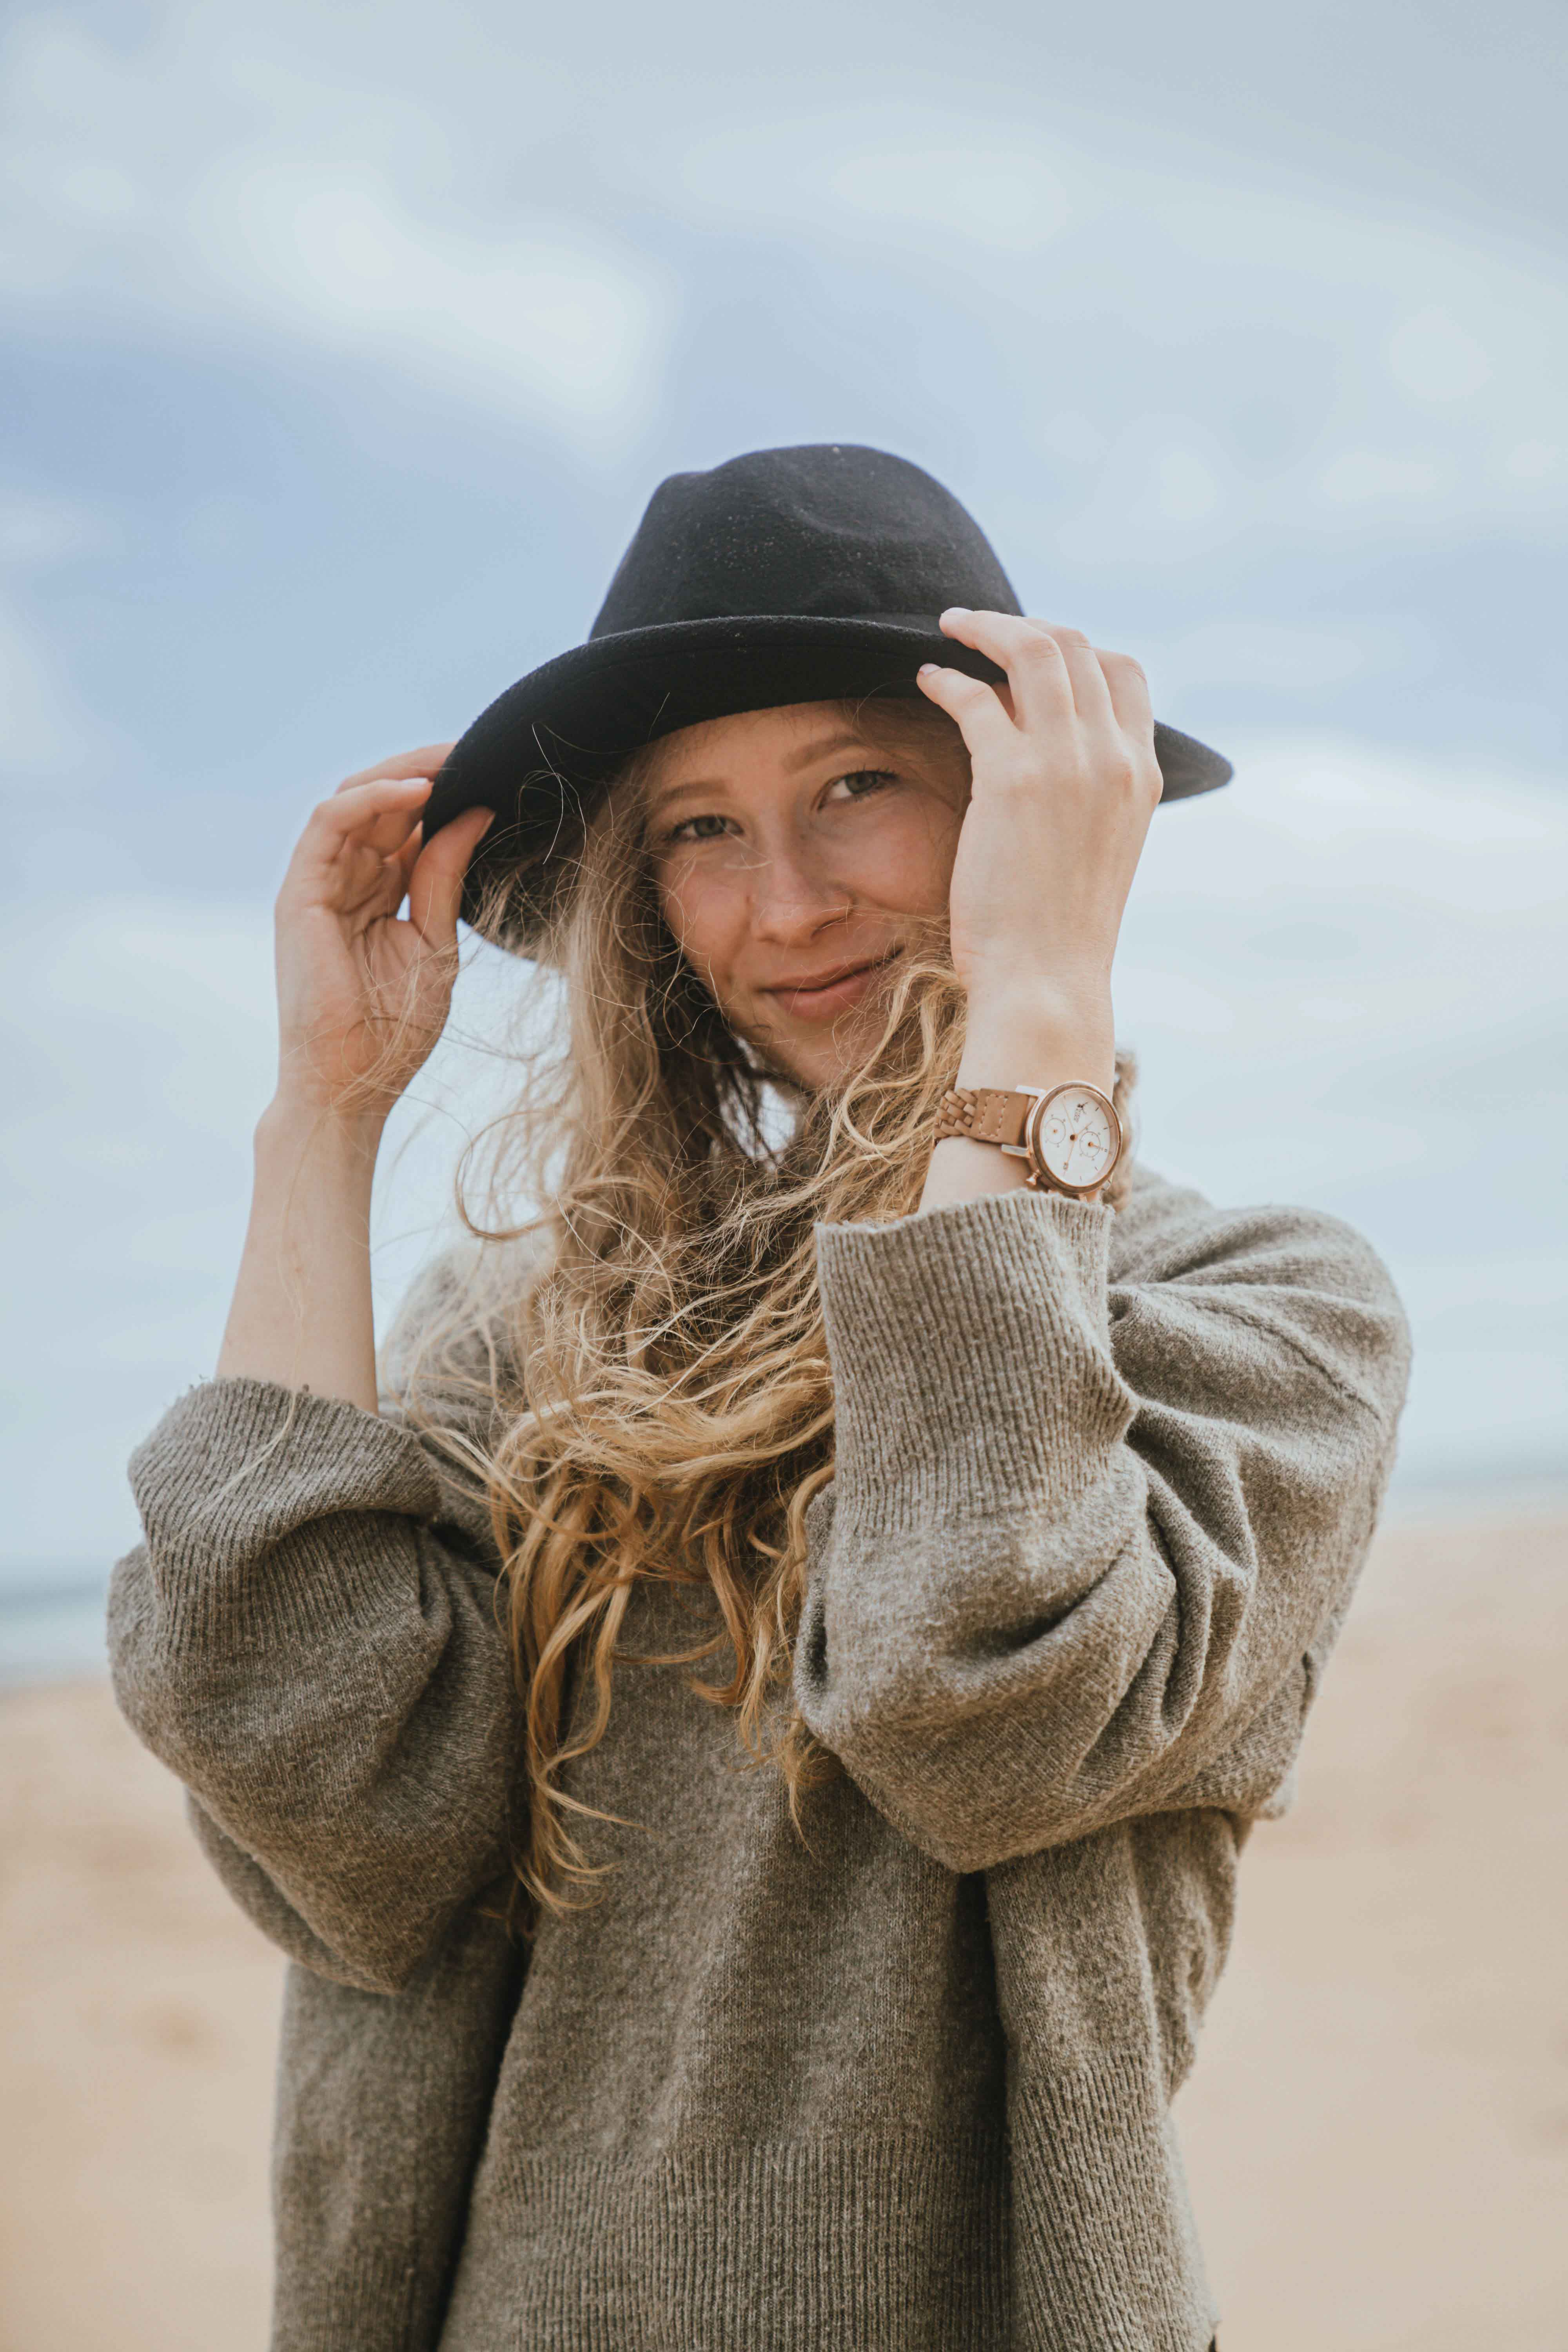 Girl with hat wearing Timber&Jack wrist watch